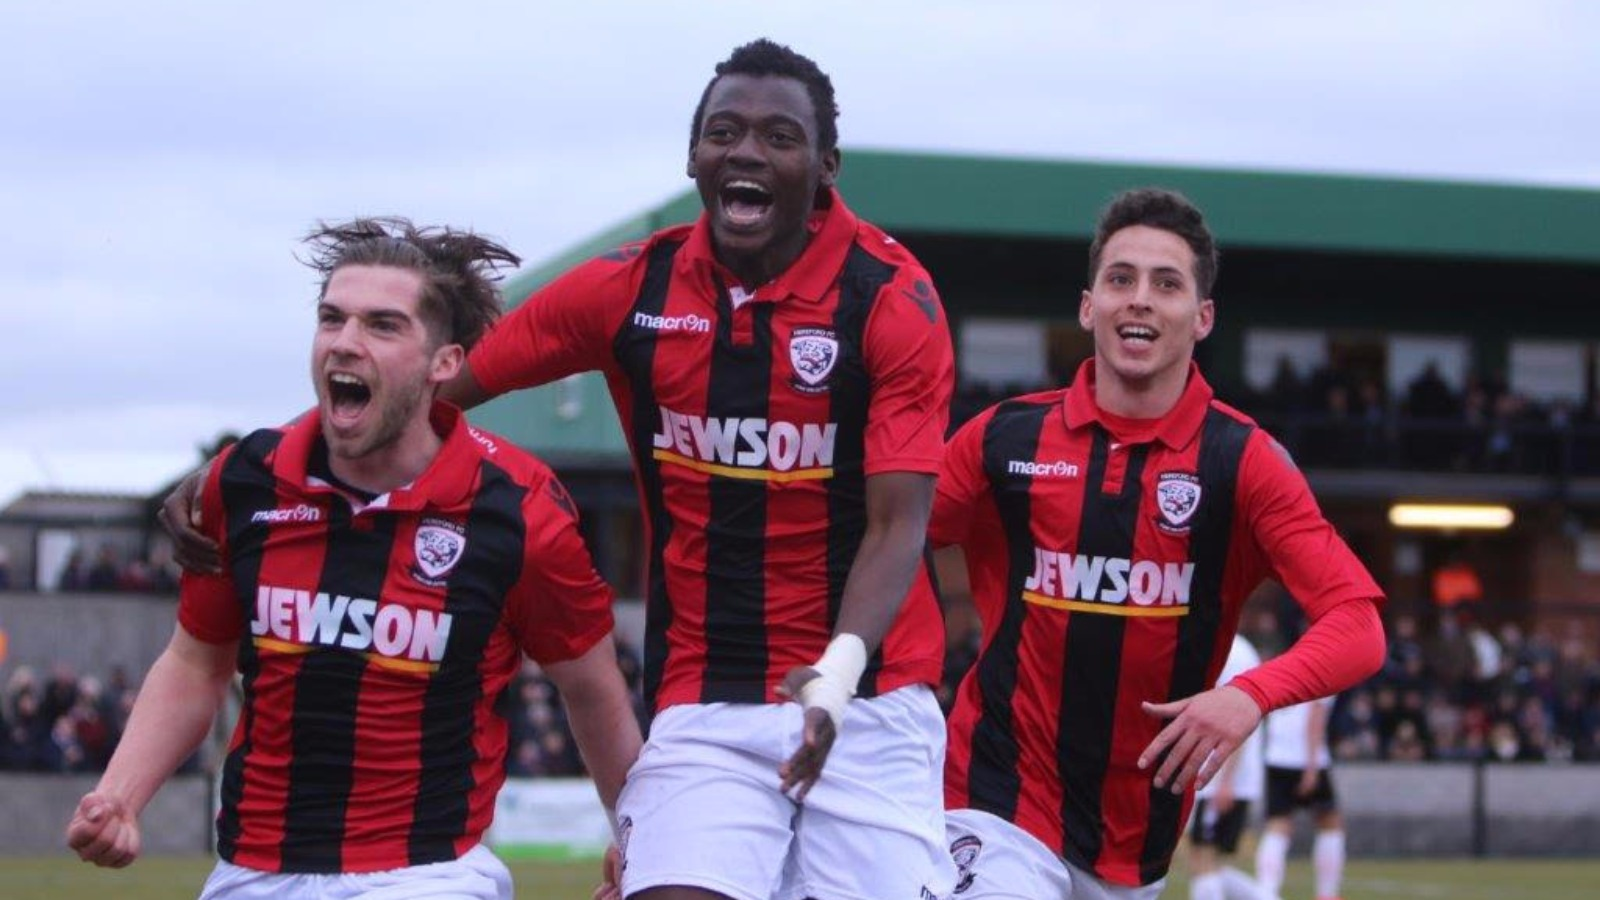 Hereford fc to play in wembley fa vase final central itv news floridaeventfo Image collections